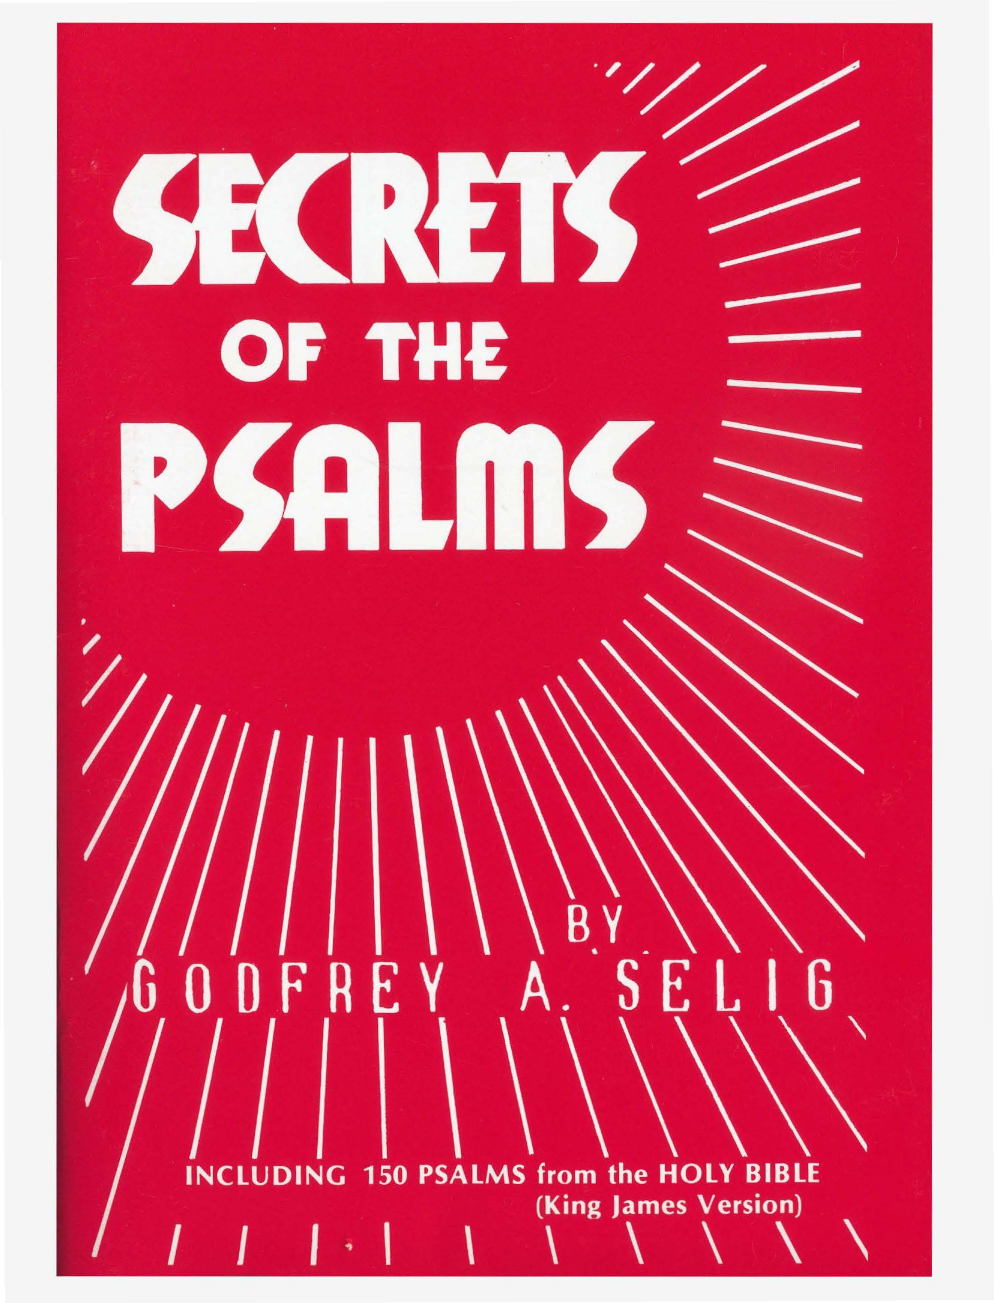 Secrets of the Psalms - you are not what you think